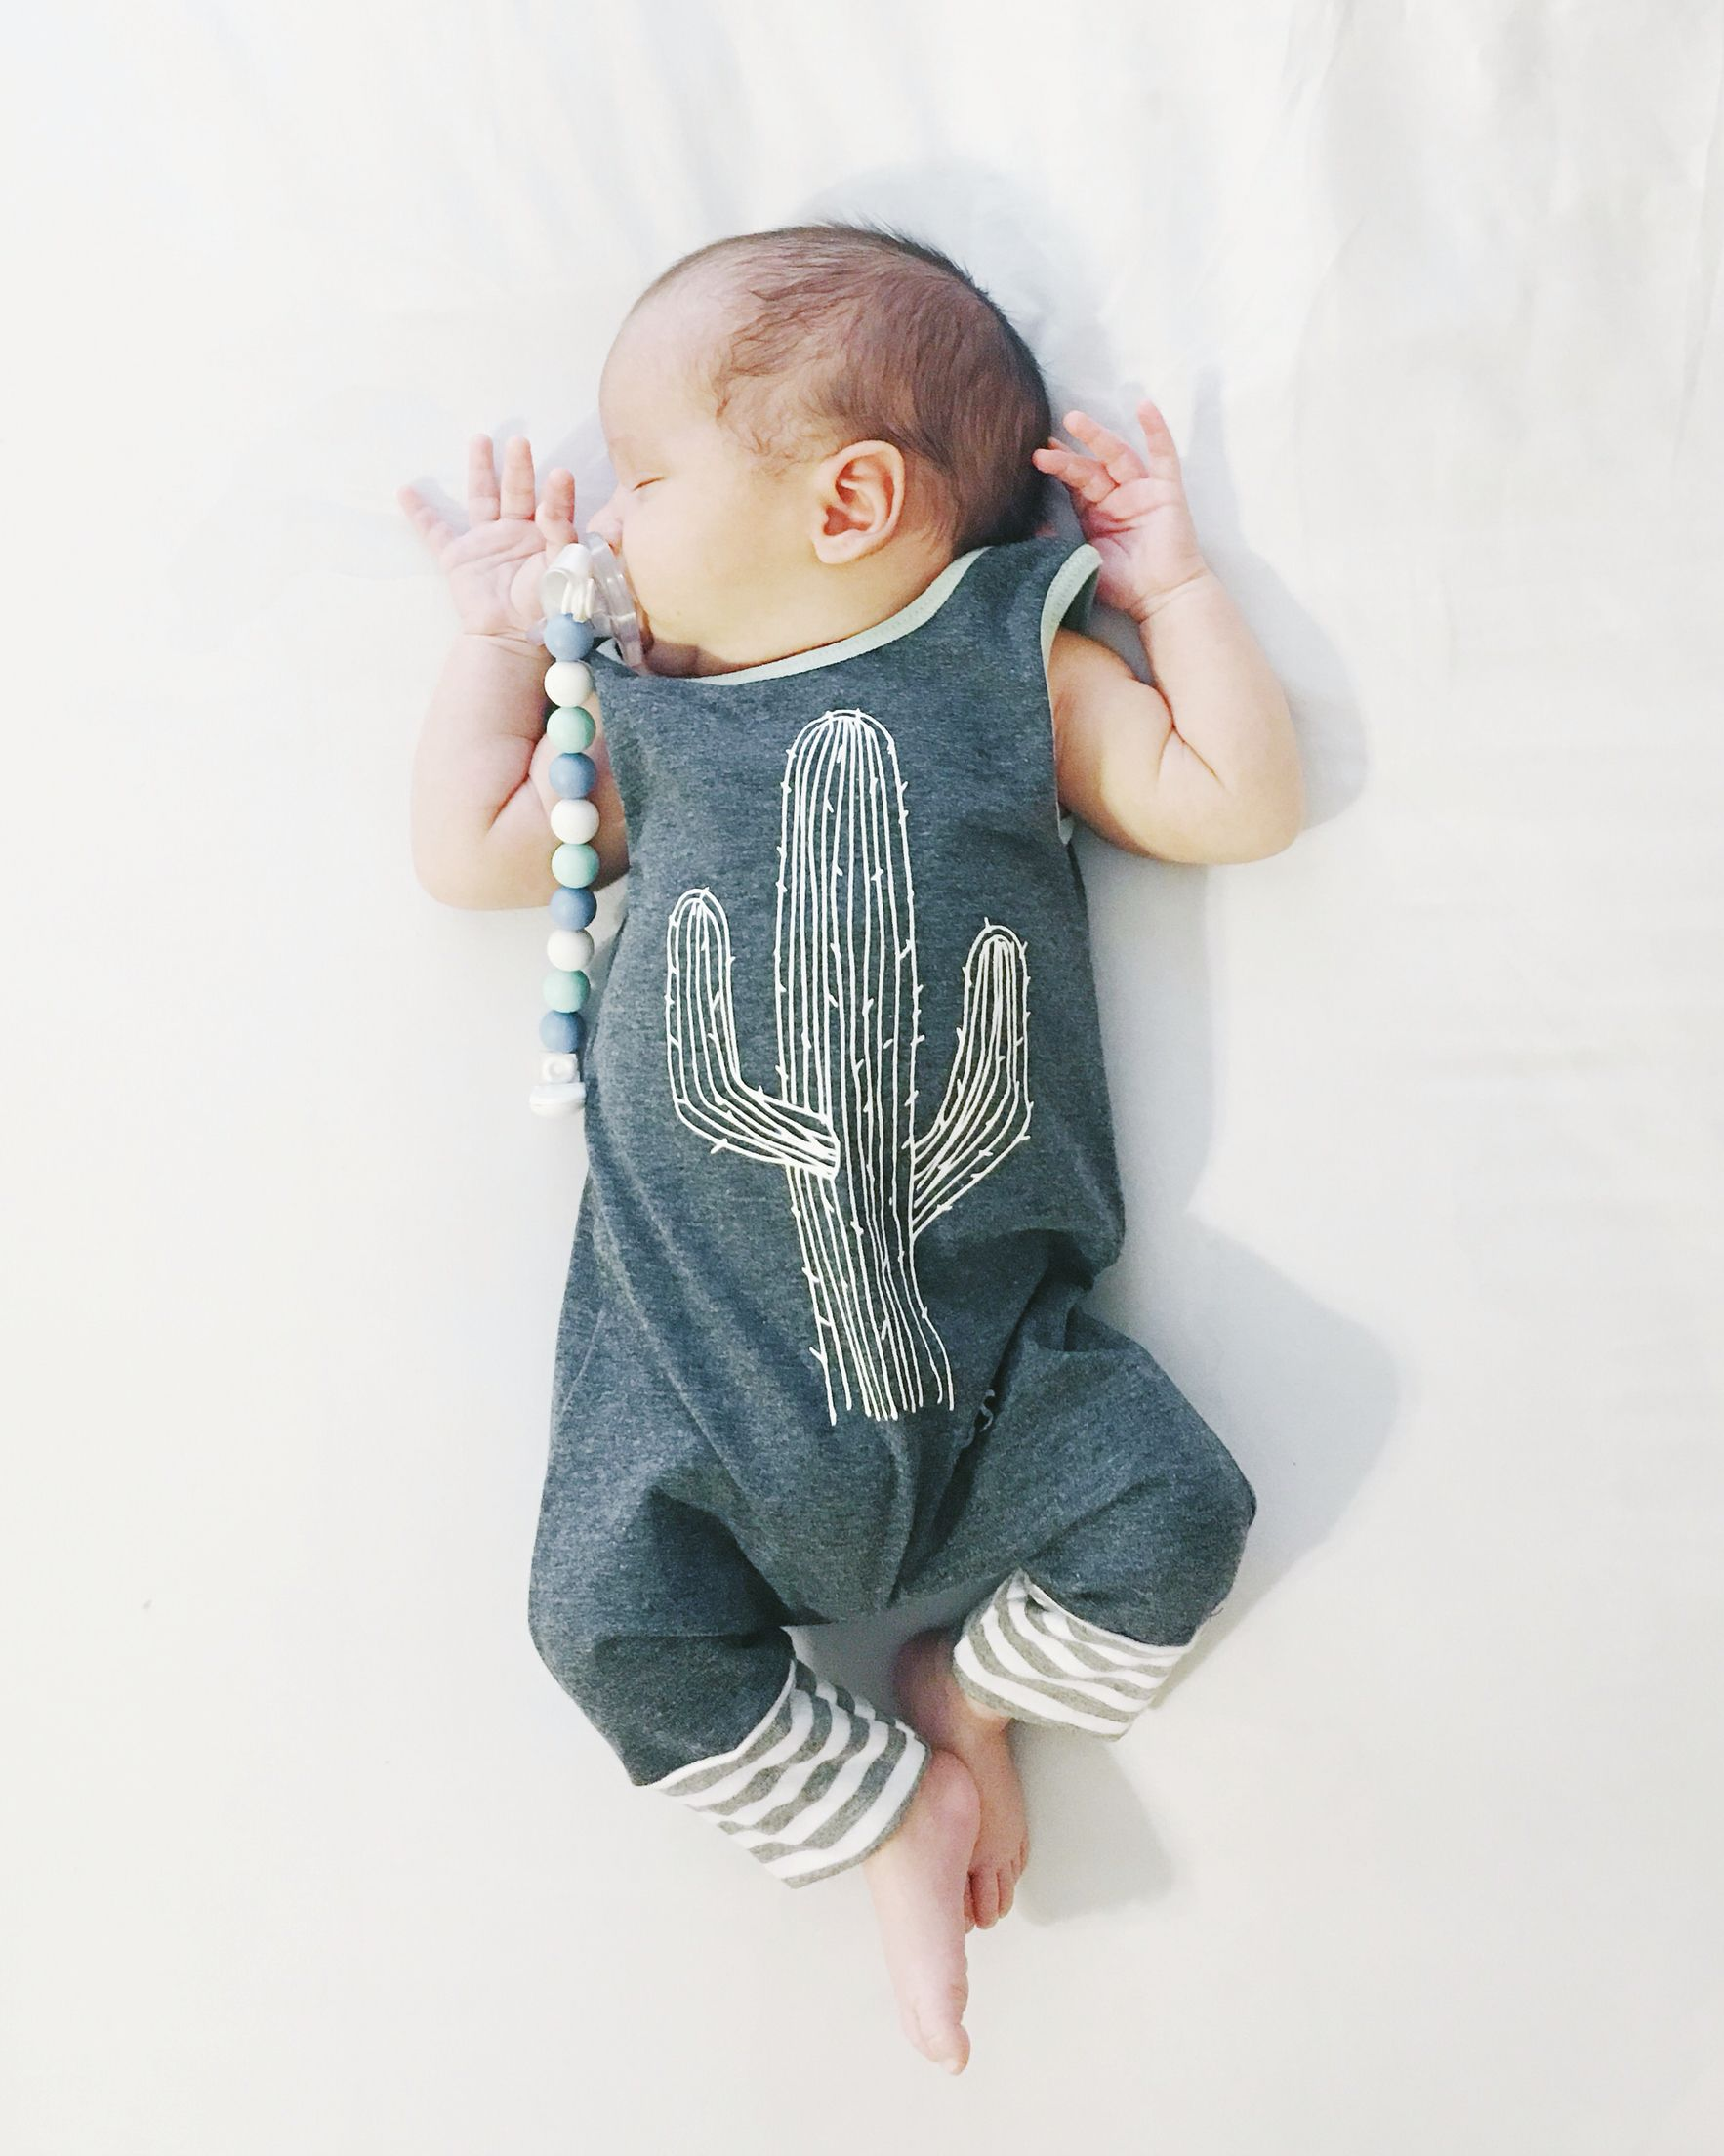 933d51ad7 Newborn style for baby boys